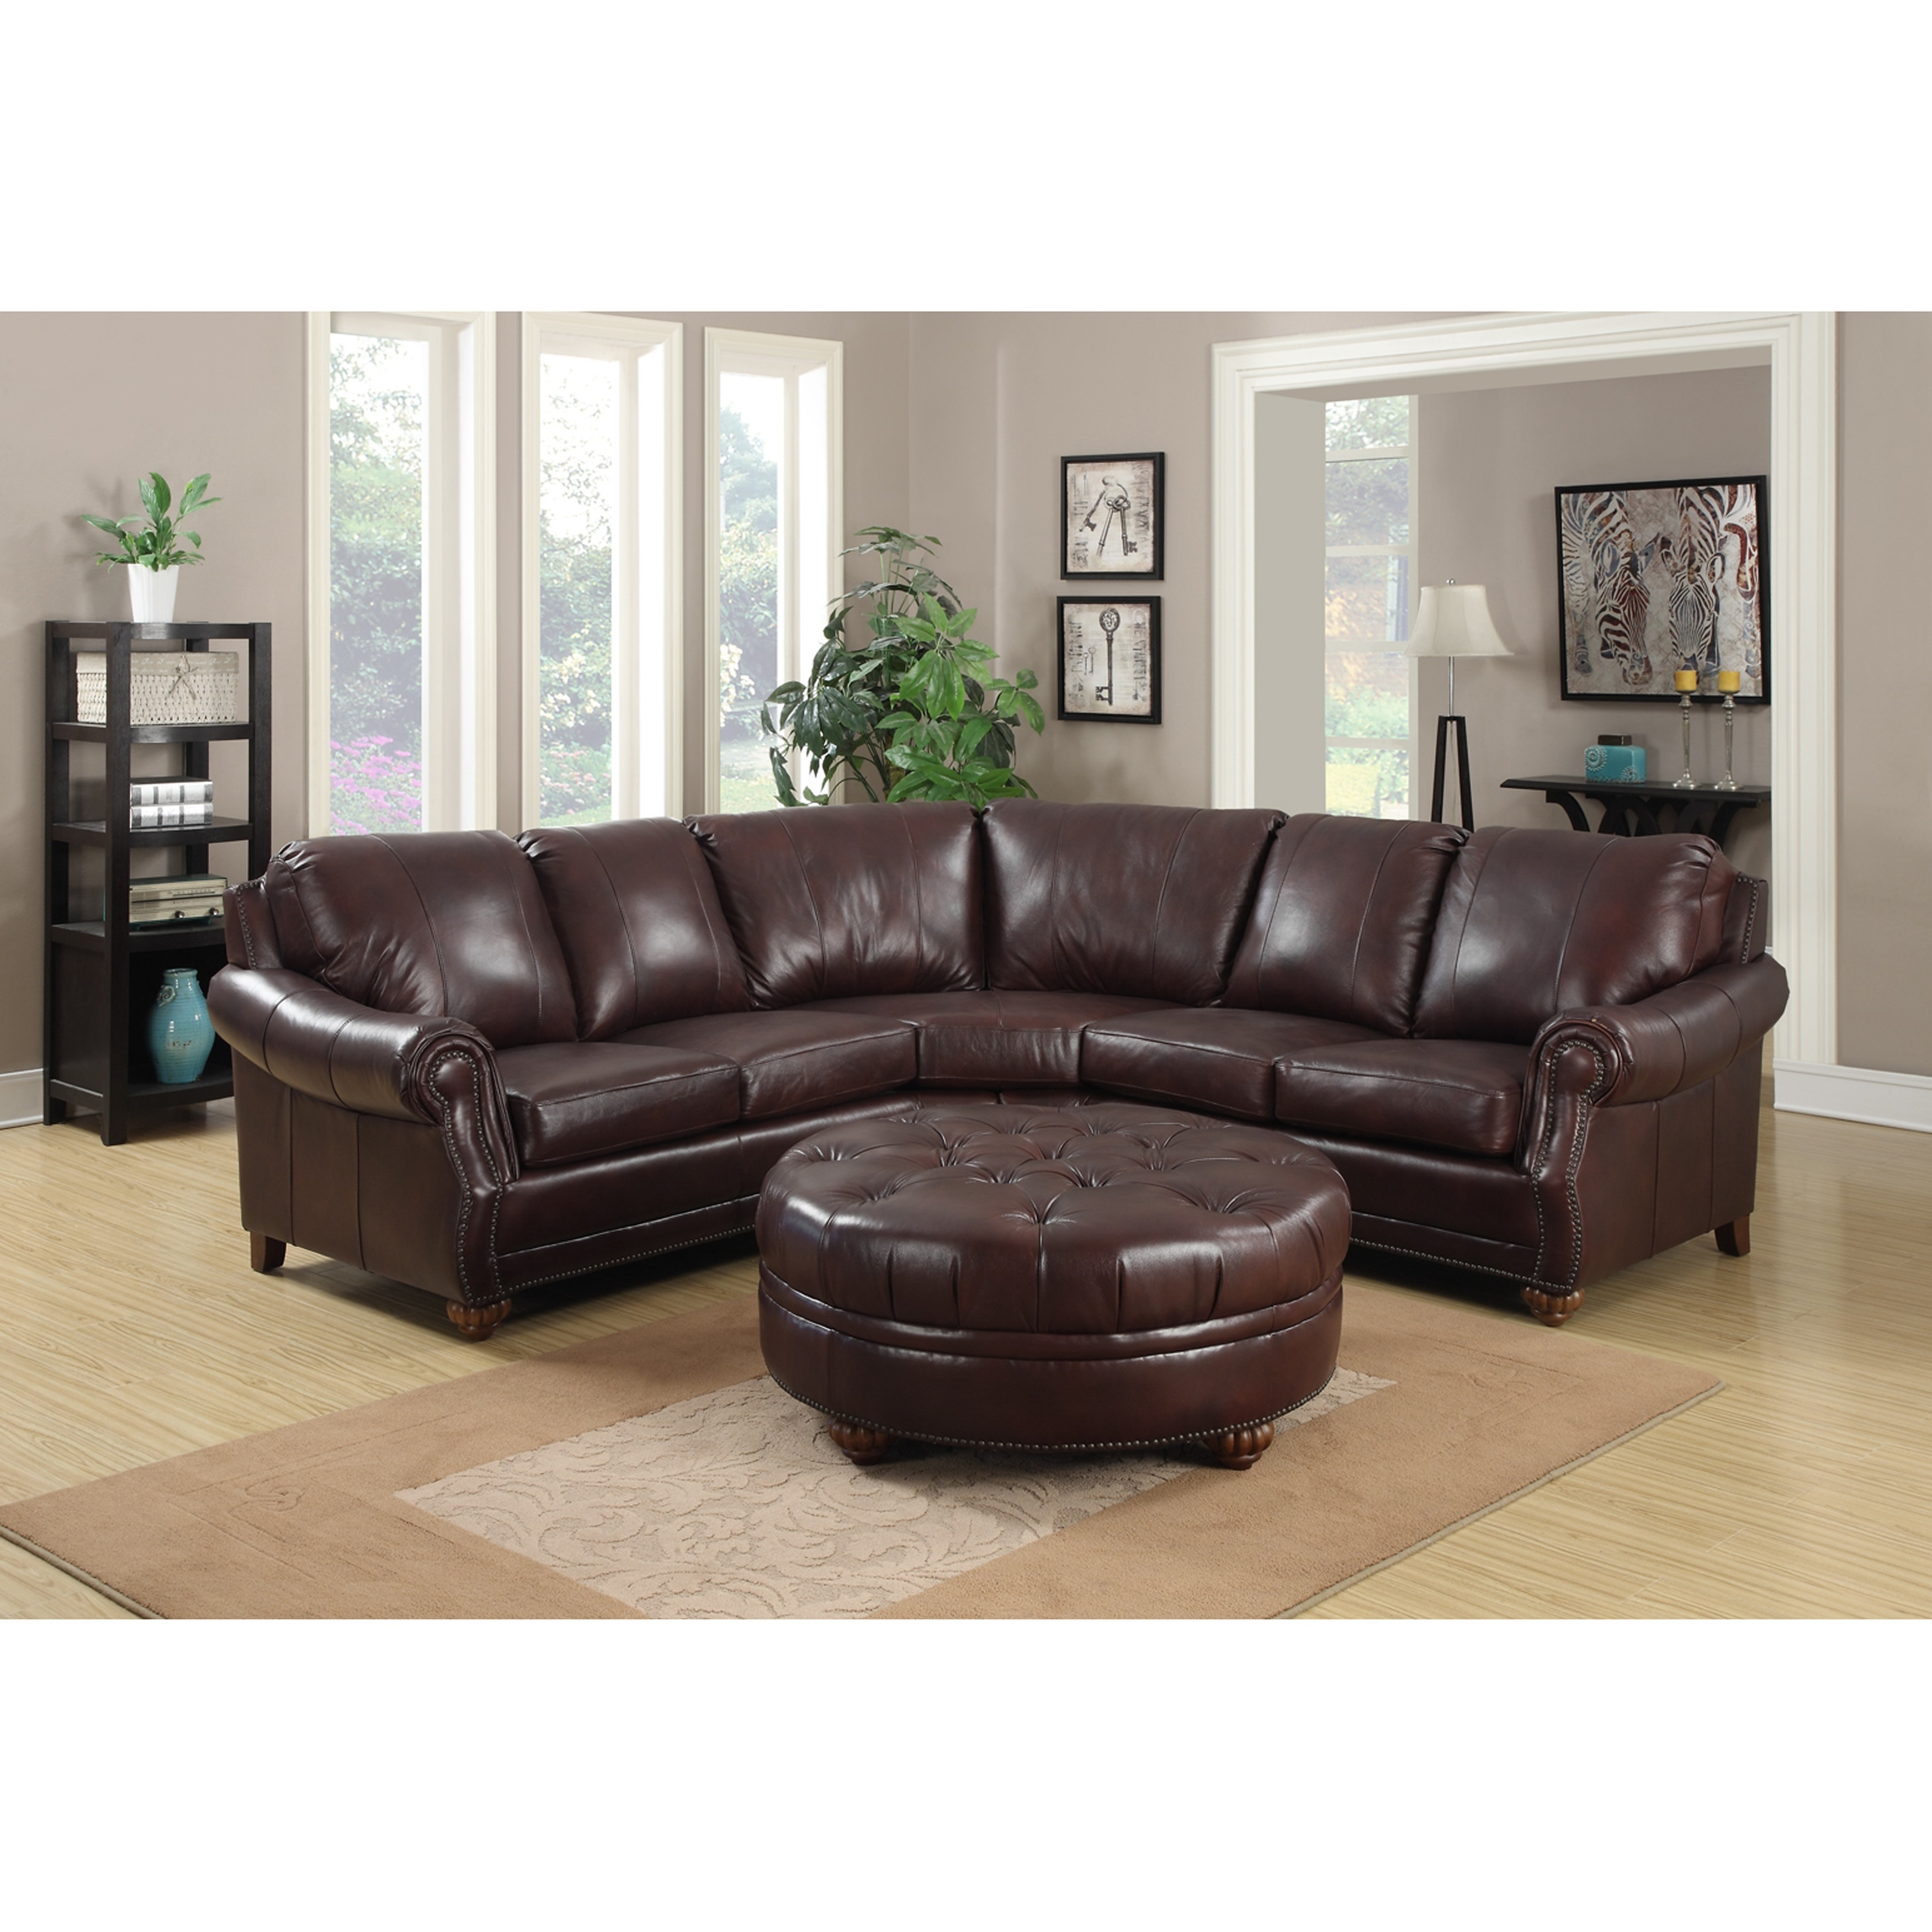 baxton studio dobson leather modern sectional sofa reviews on clack beds furniture for sale gt adfind org